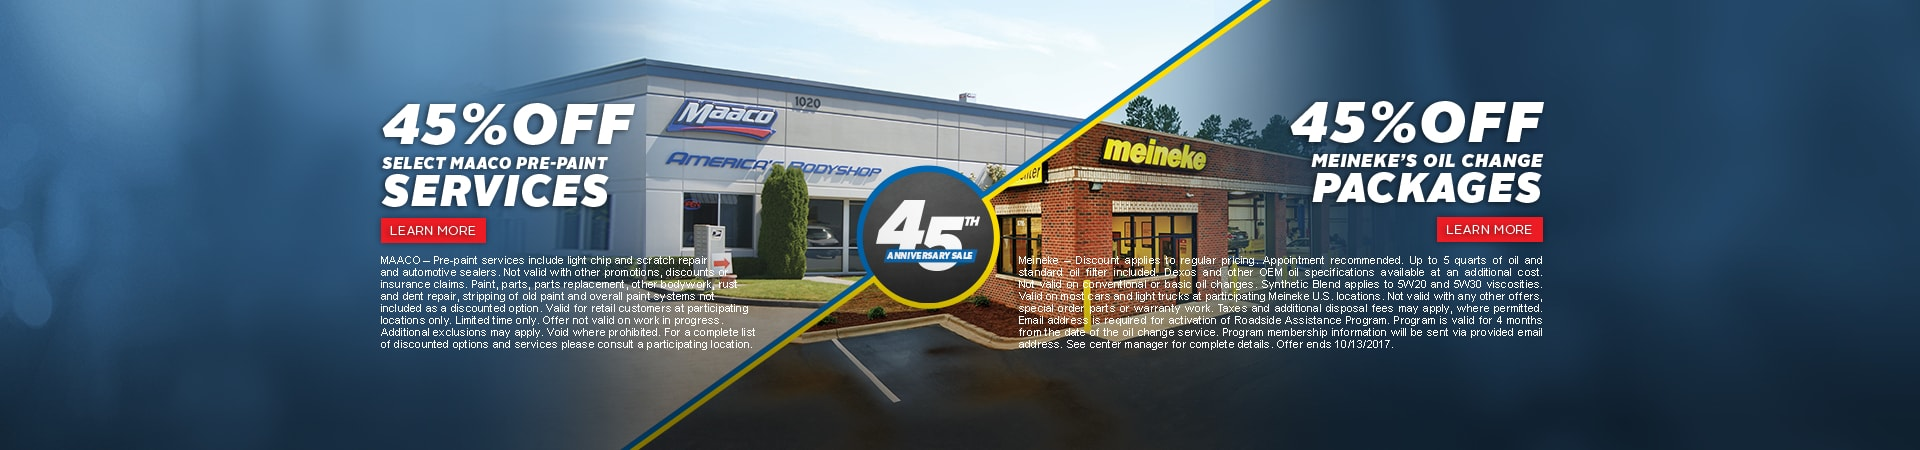 Maaco: 45th Anniversary - 45% off pre-paint services & 45% off Meieneke Oil Change Packages